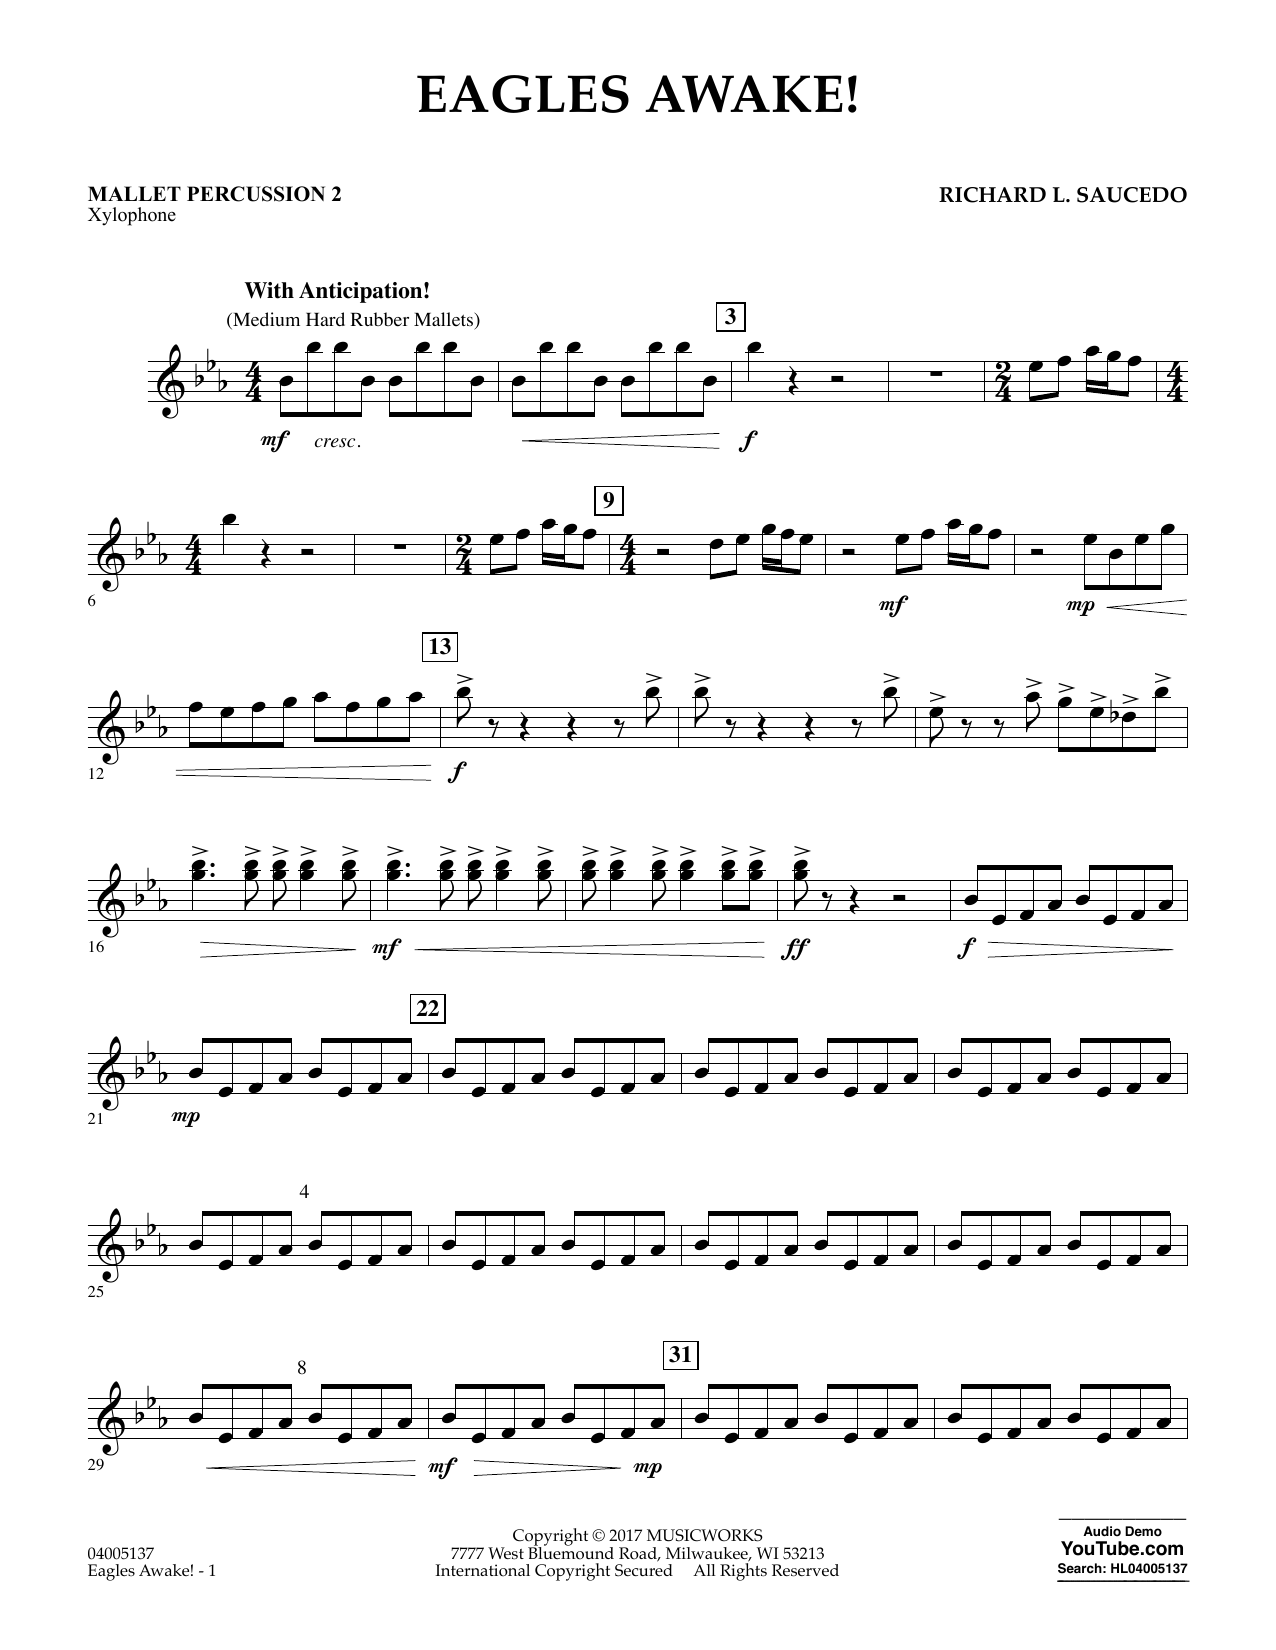 Eagles Awake! - Mallet Percussion 2 Digitale Noten